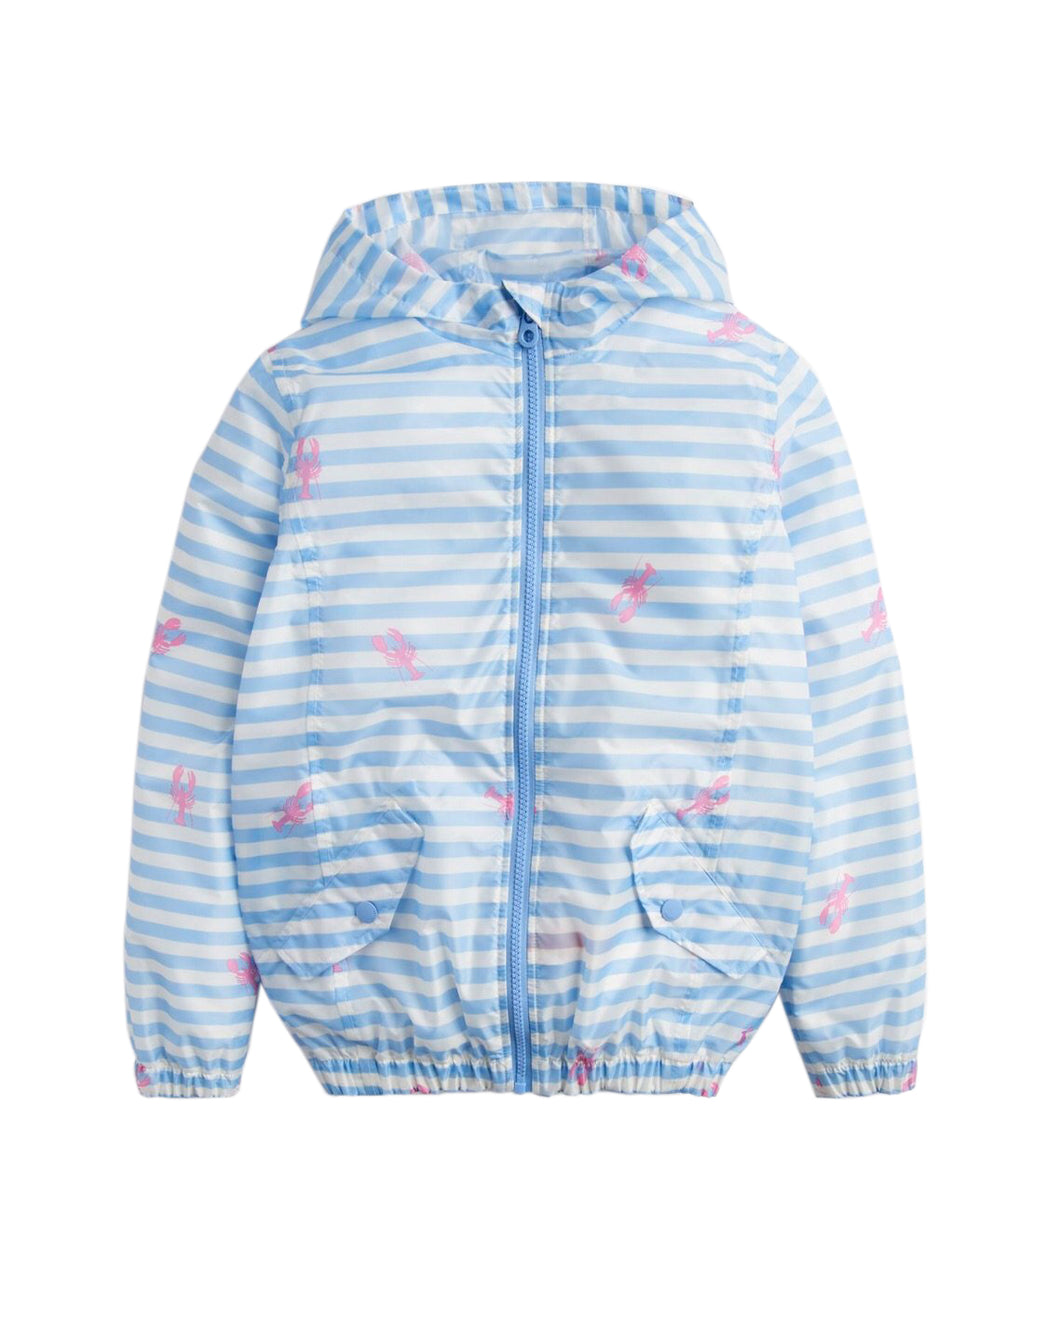 Joules Go Lightly Packaway Jacket